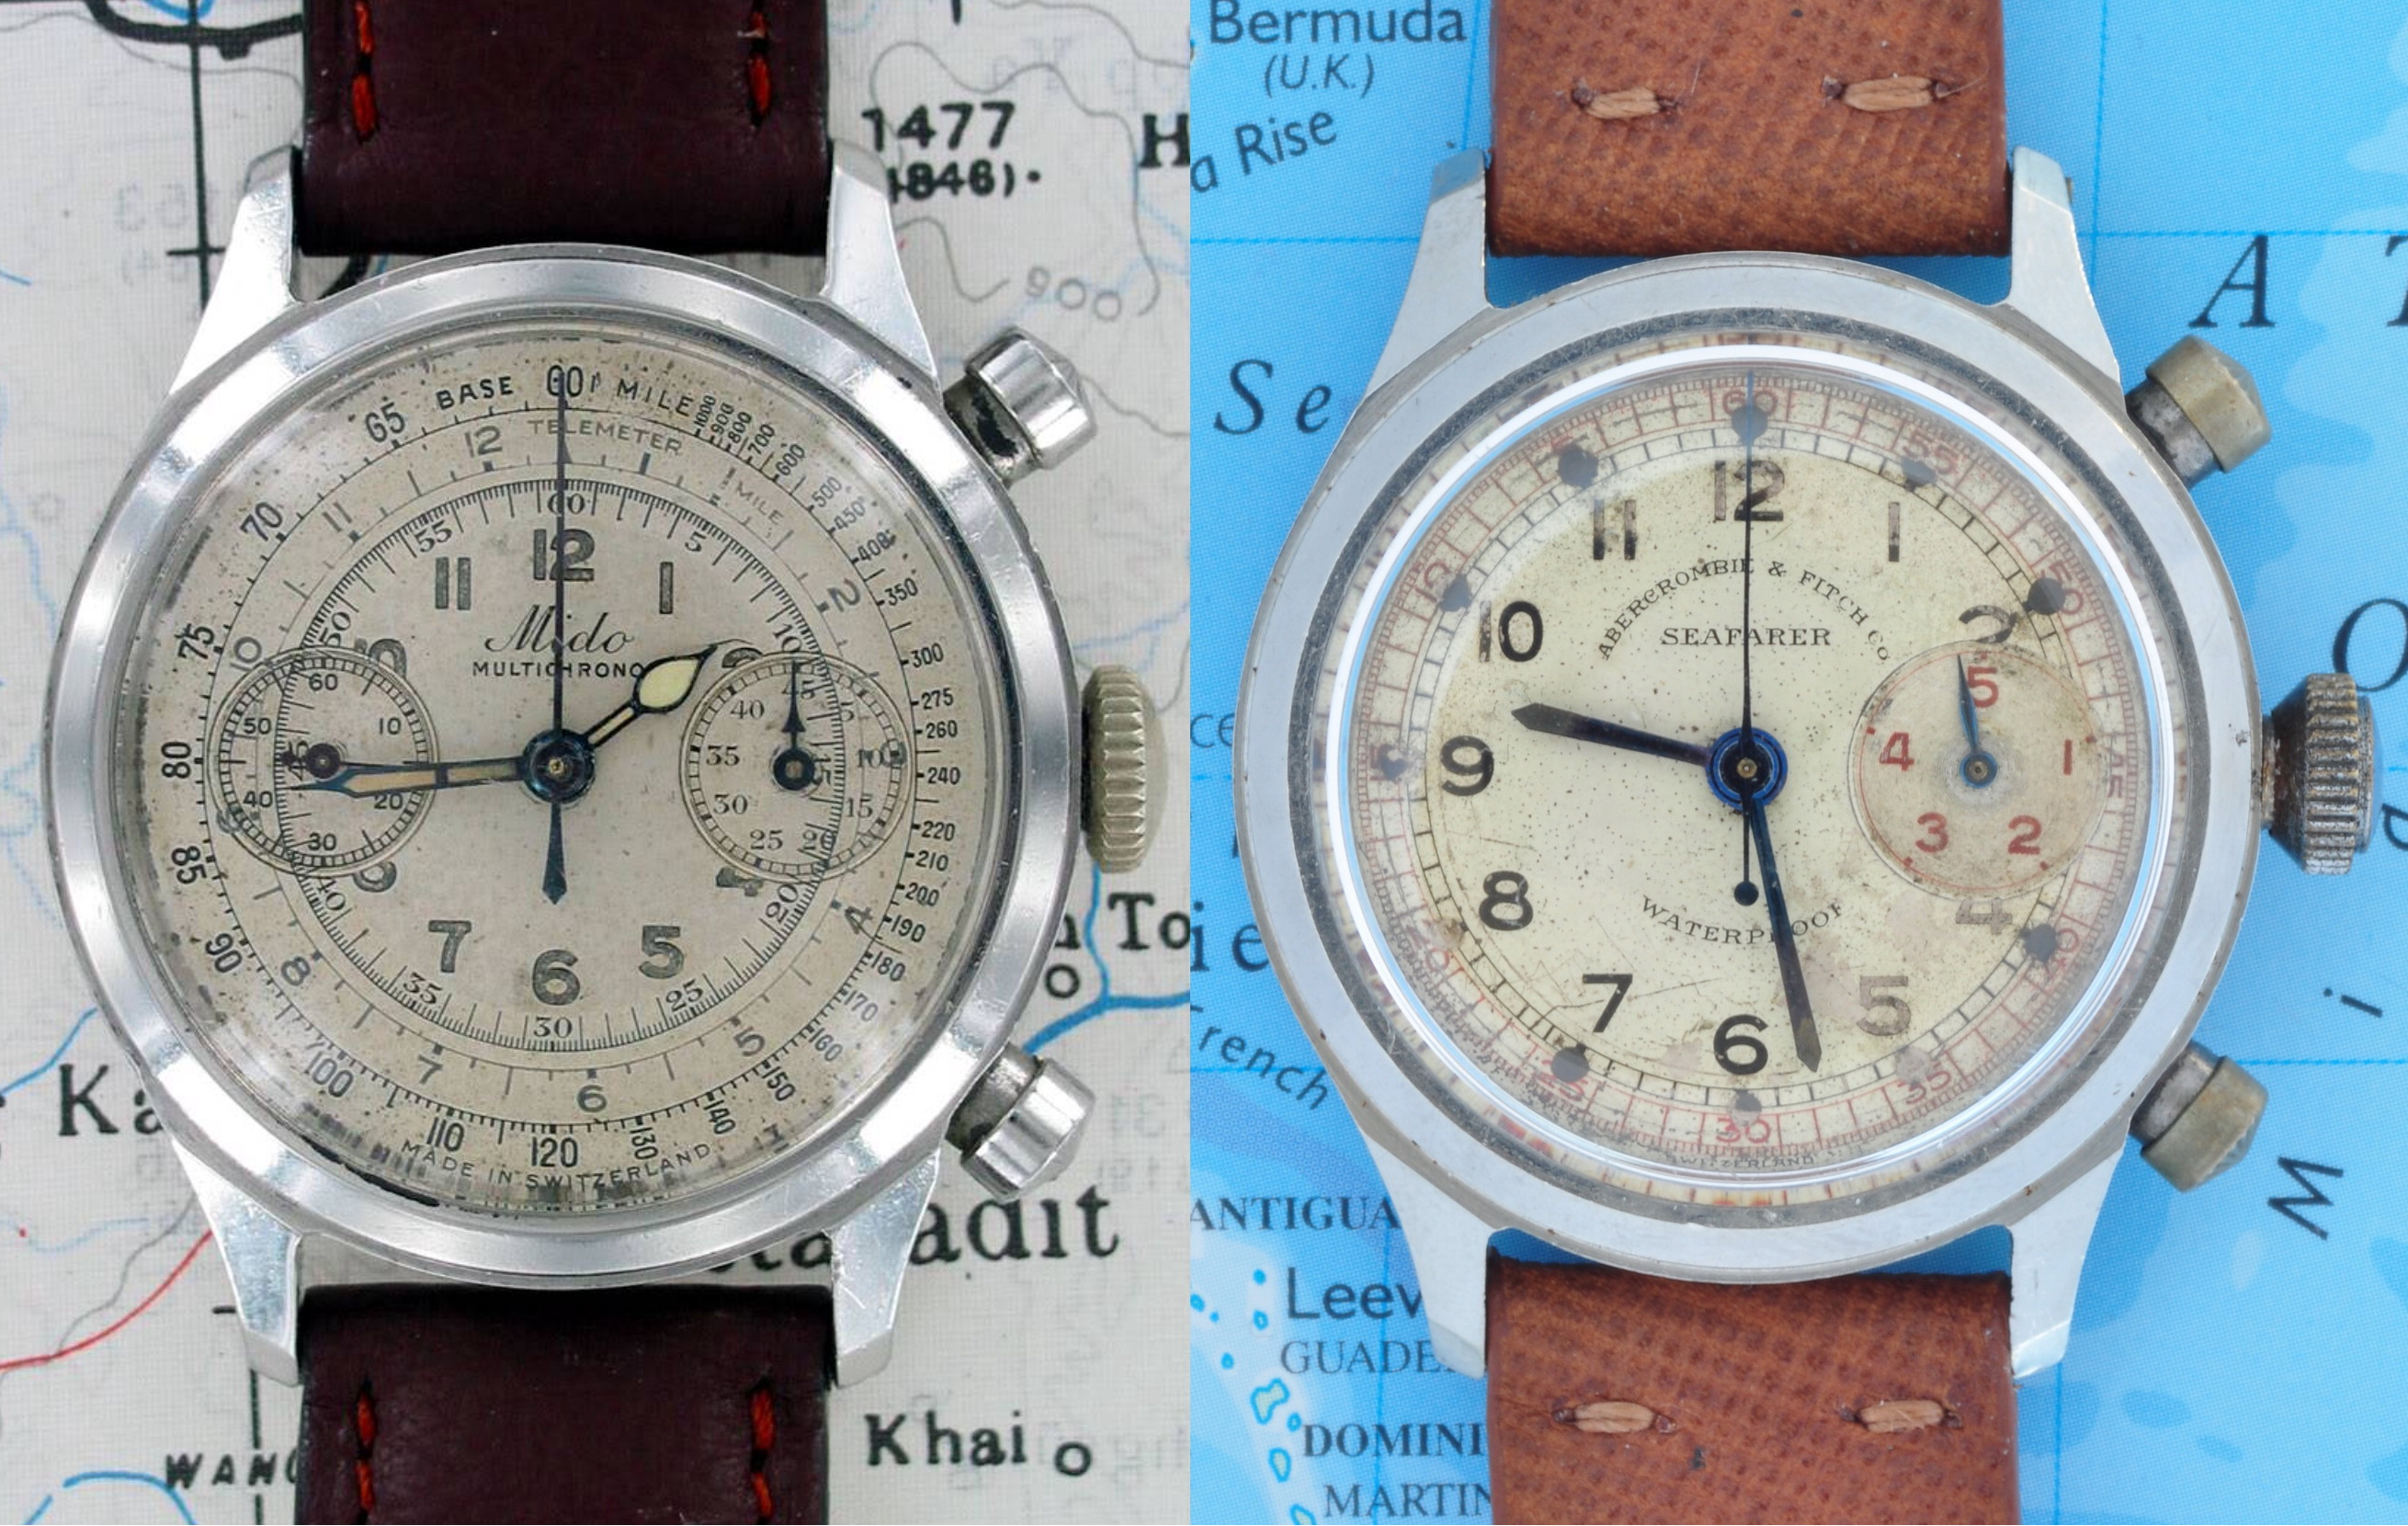 Found: The First Abercrombie & Fitch Seafarer (pre-Heuer